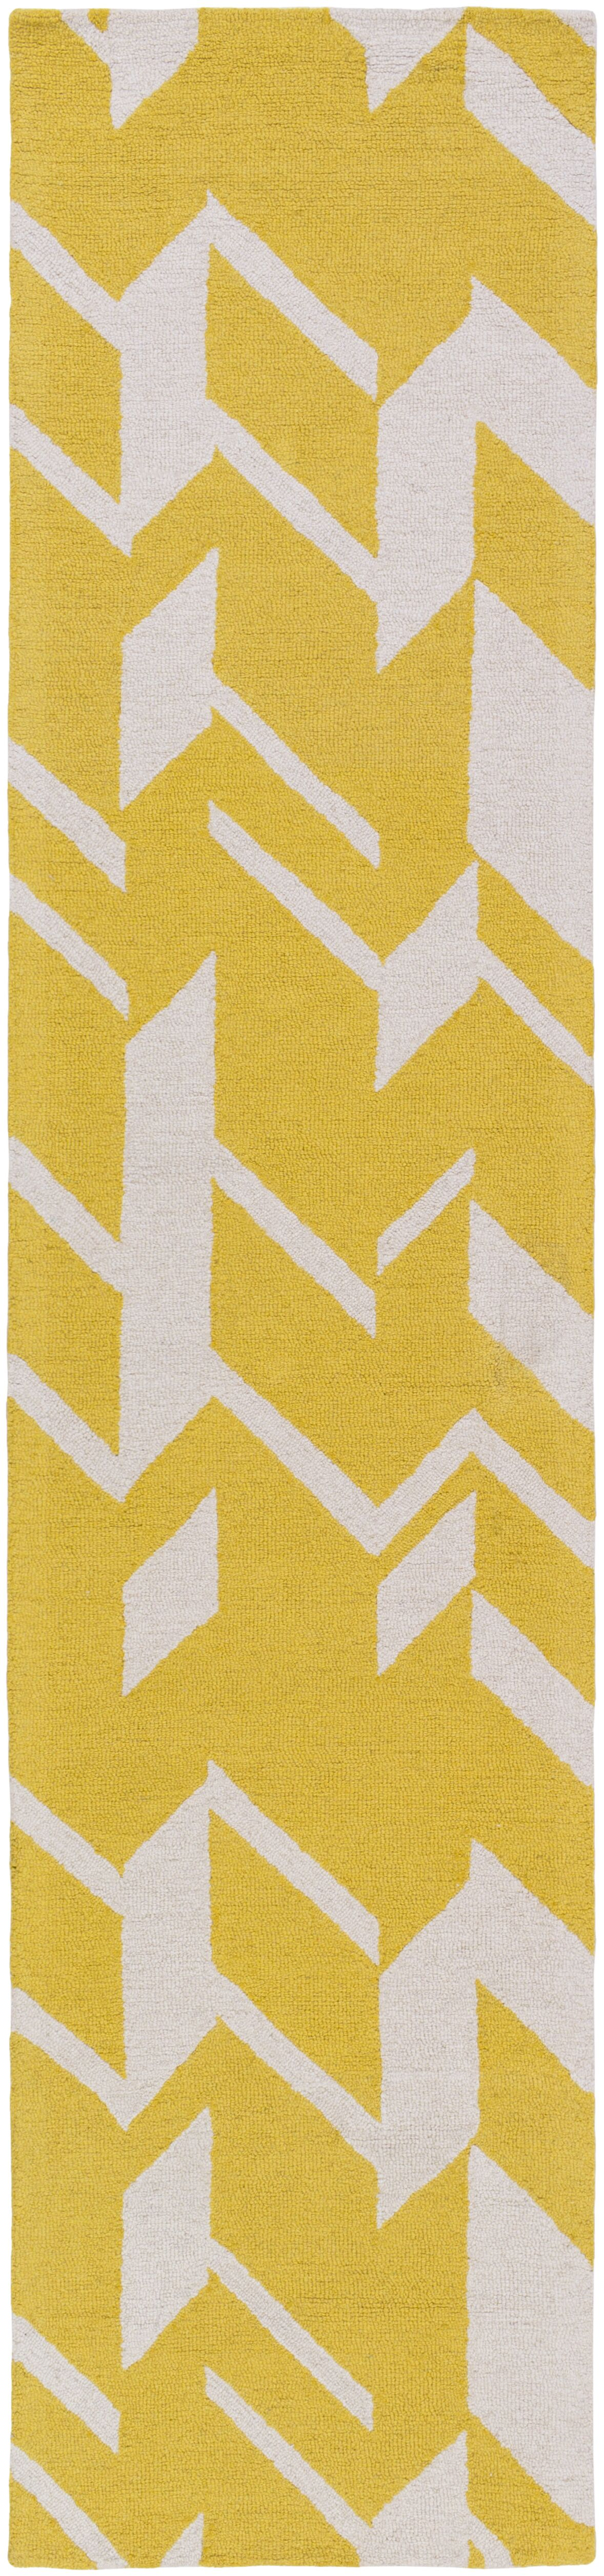 Youmans Hand-Crafted Yellow/White Area Rug Rug Size: Rectangle 8' x 11'